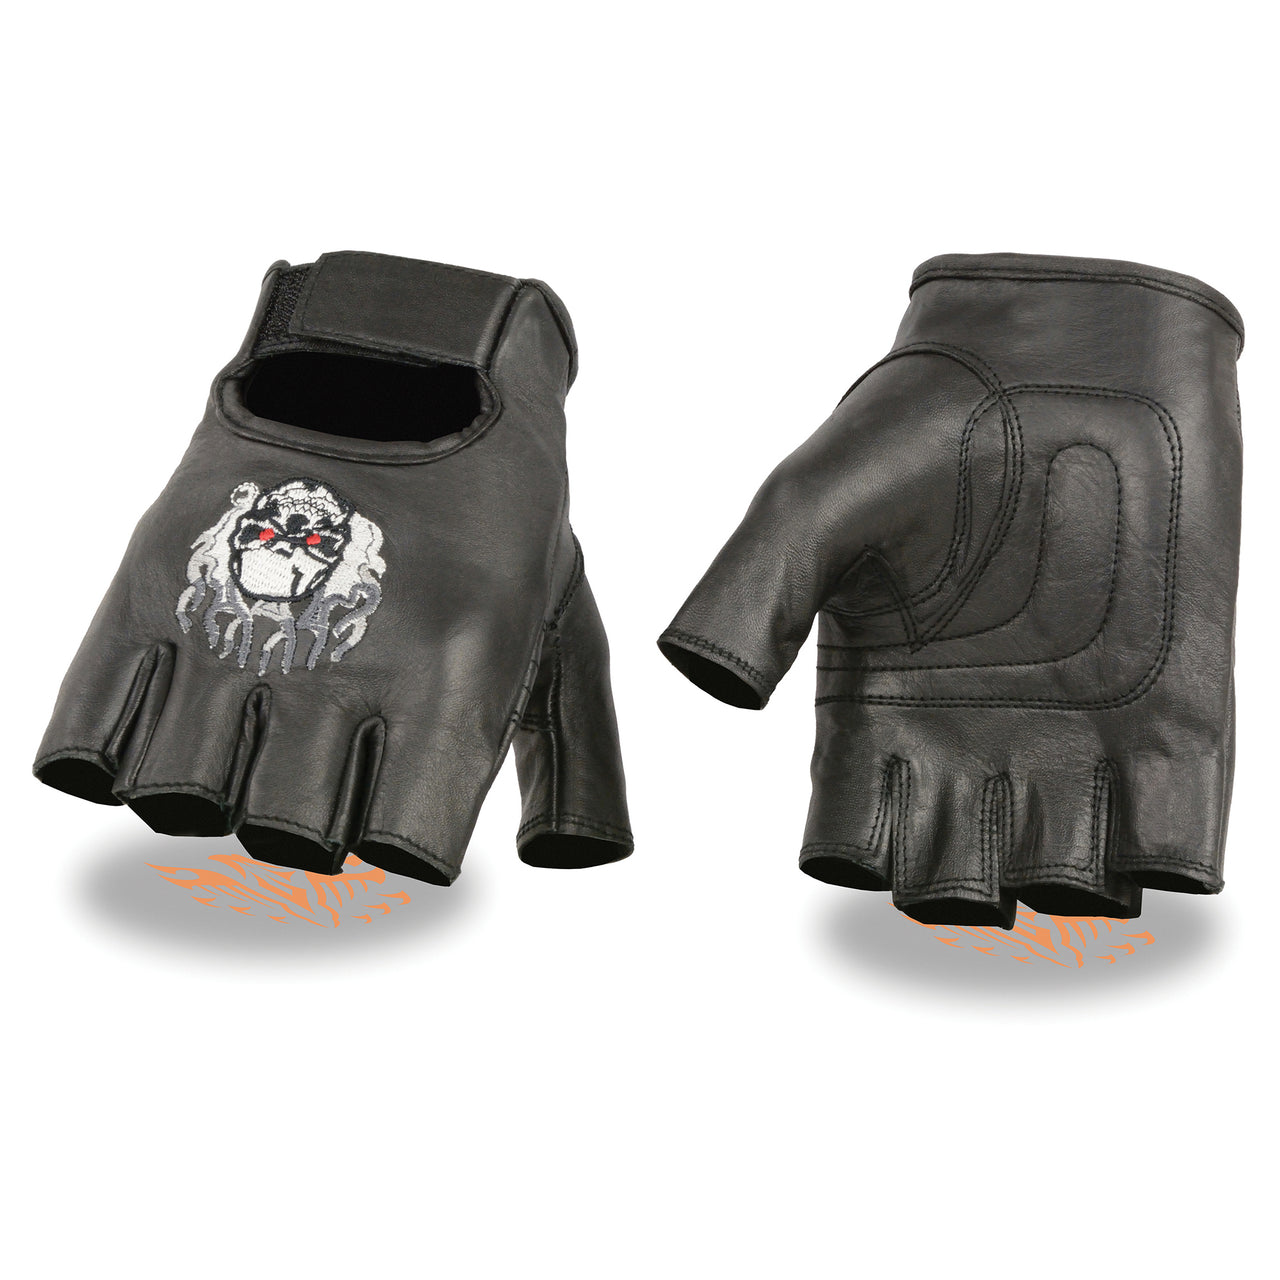 Men's Leather Fingerless Glove w/ Flaming Skull Embroidery - HighwayLeather